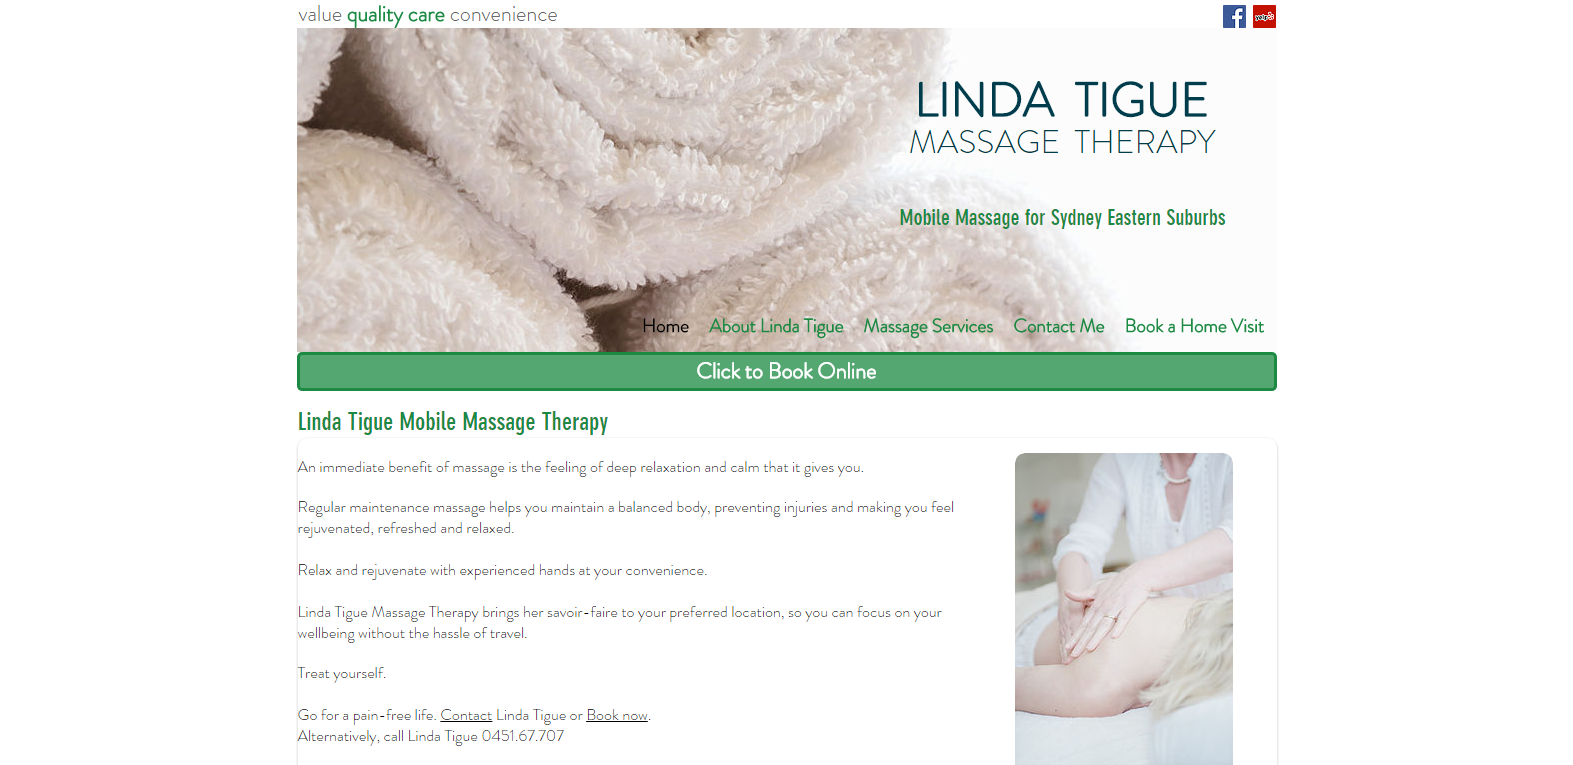 Linda Tigue Massage